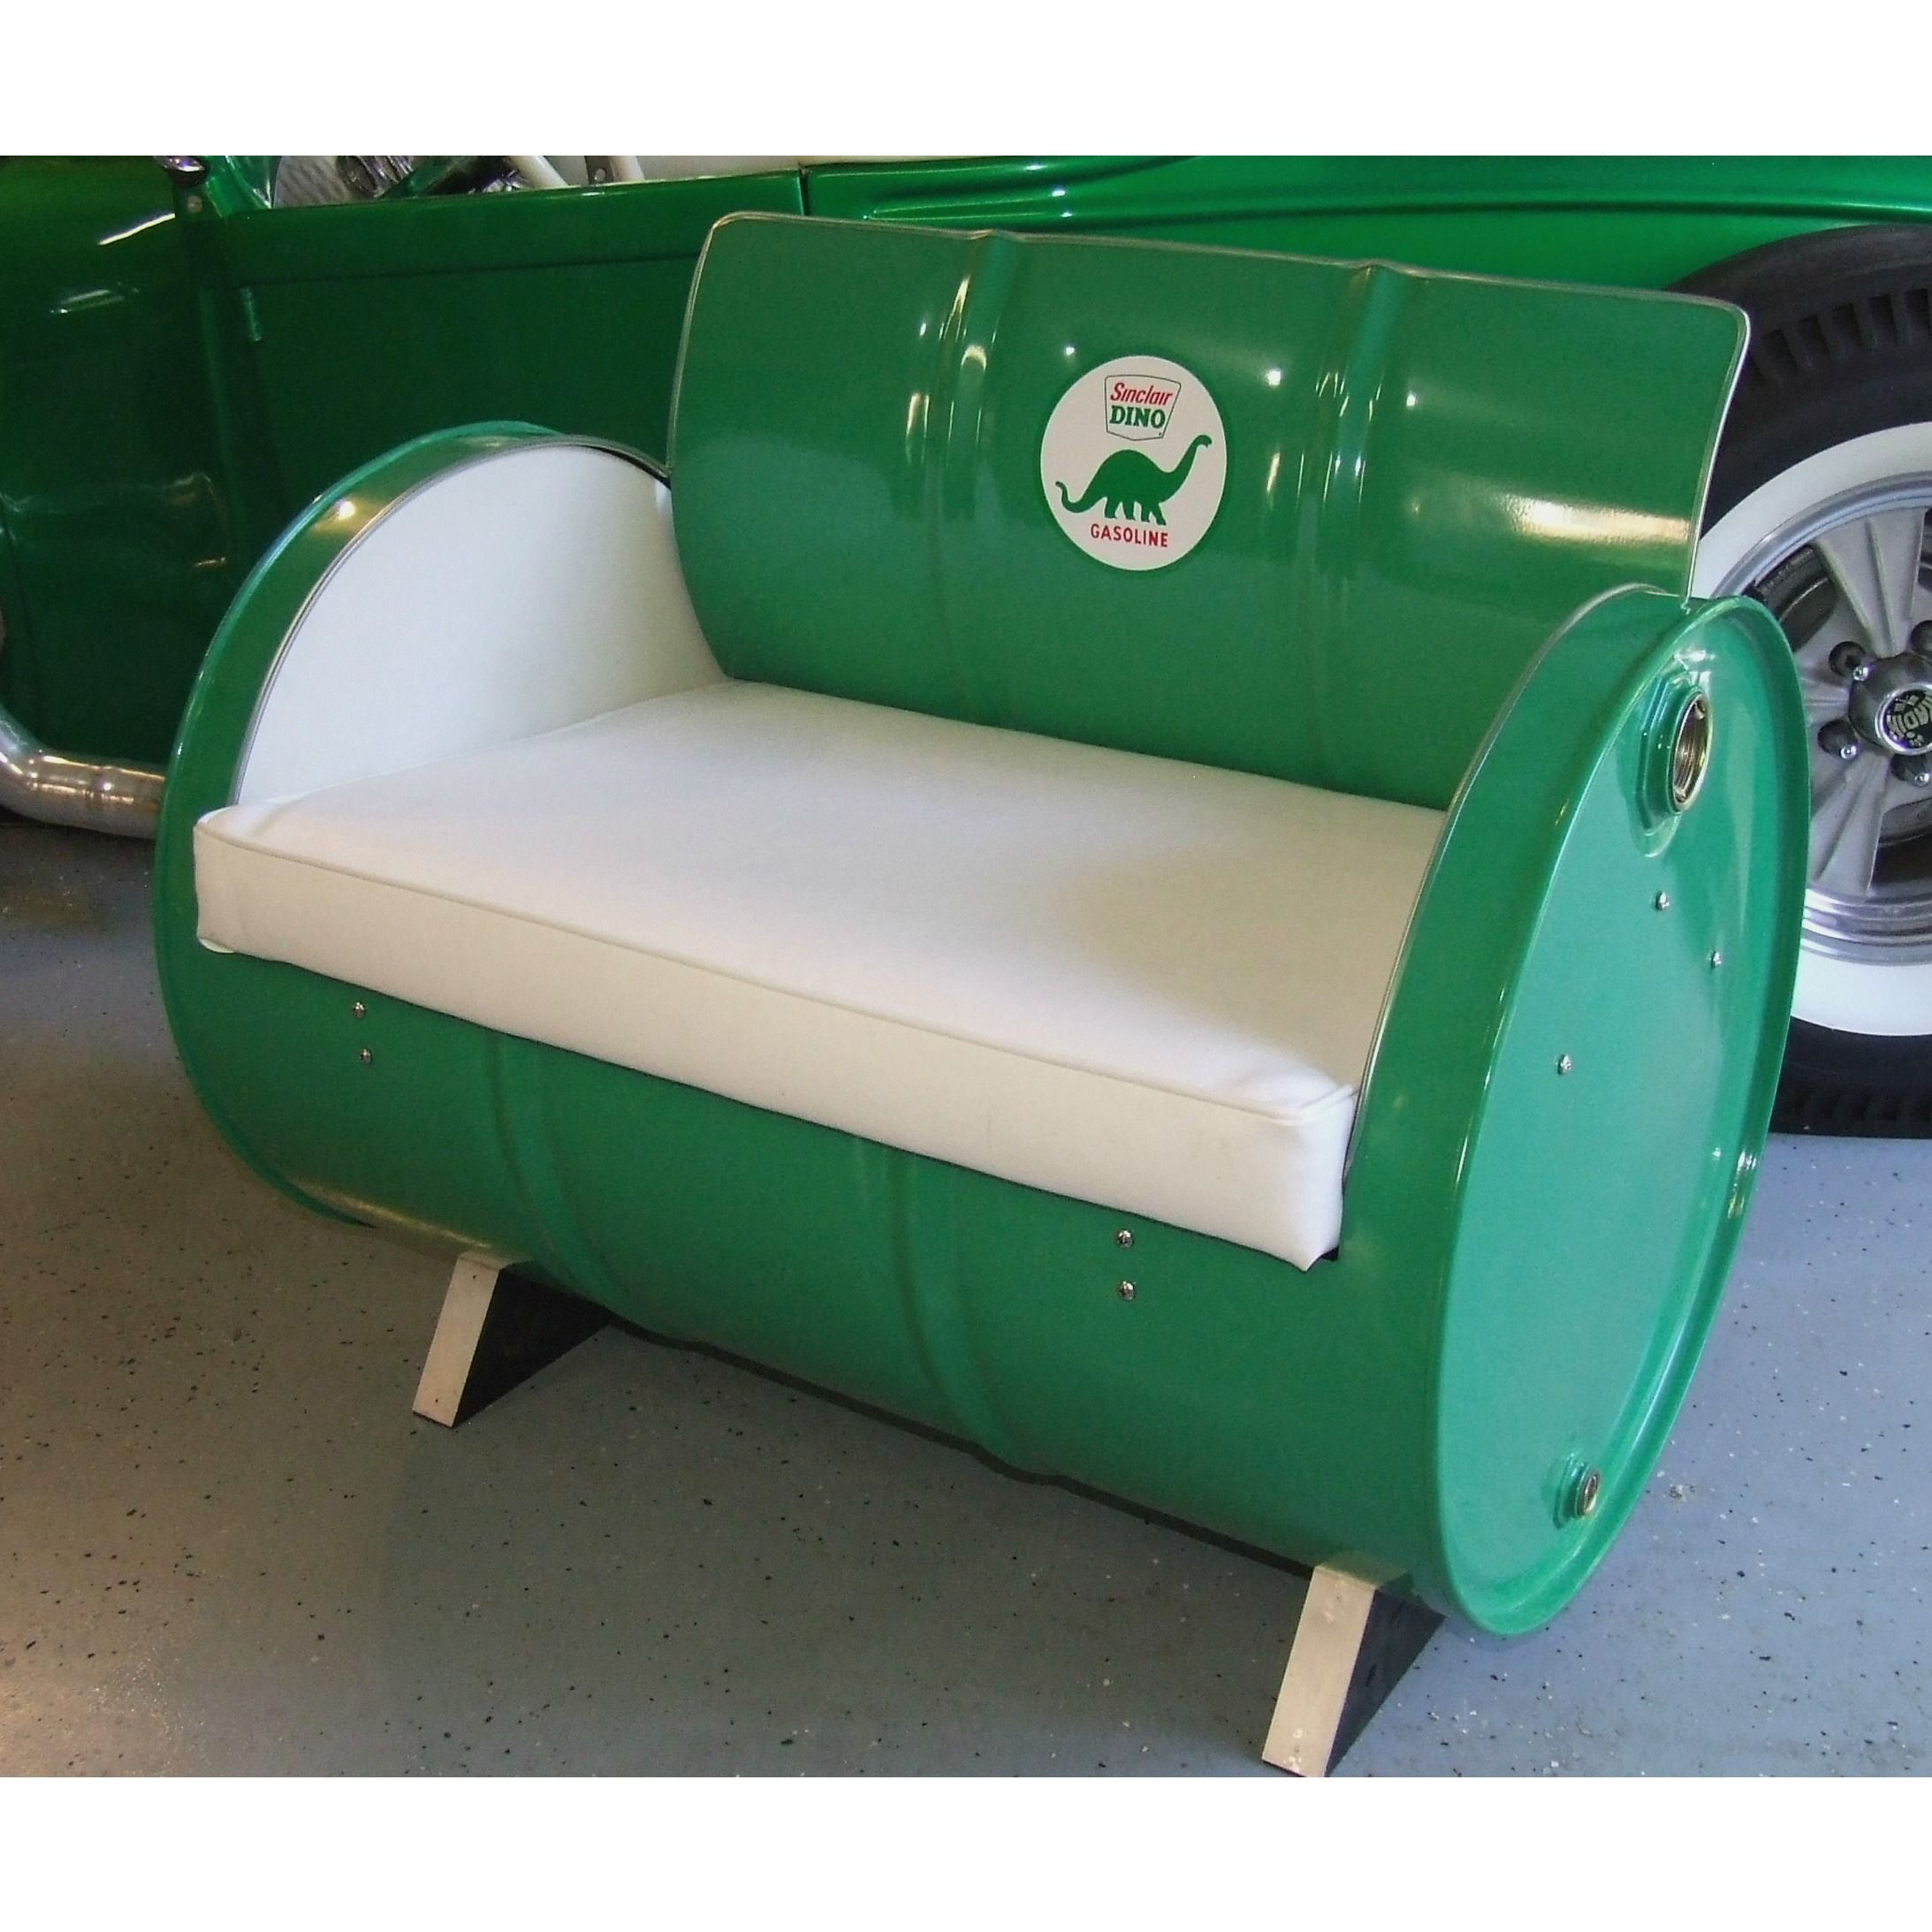 Drum Works Furniture Repurposes Recycled 55 Gallon Steel Drums Into  Seating, Bars, Shop Cabinets And Outdoor Seating. This Sinclair Dino Arm  Chair Will Be A ...